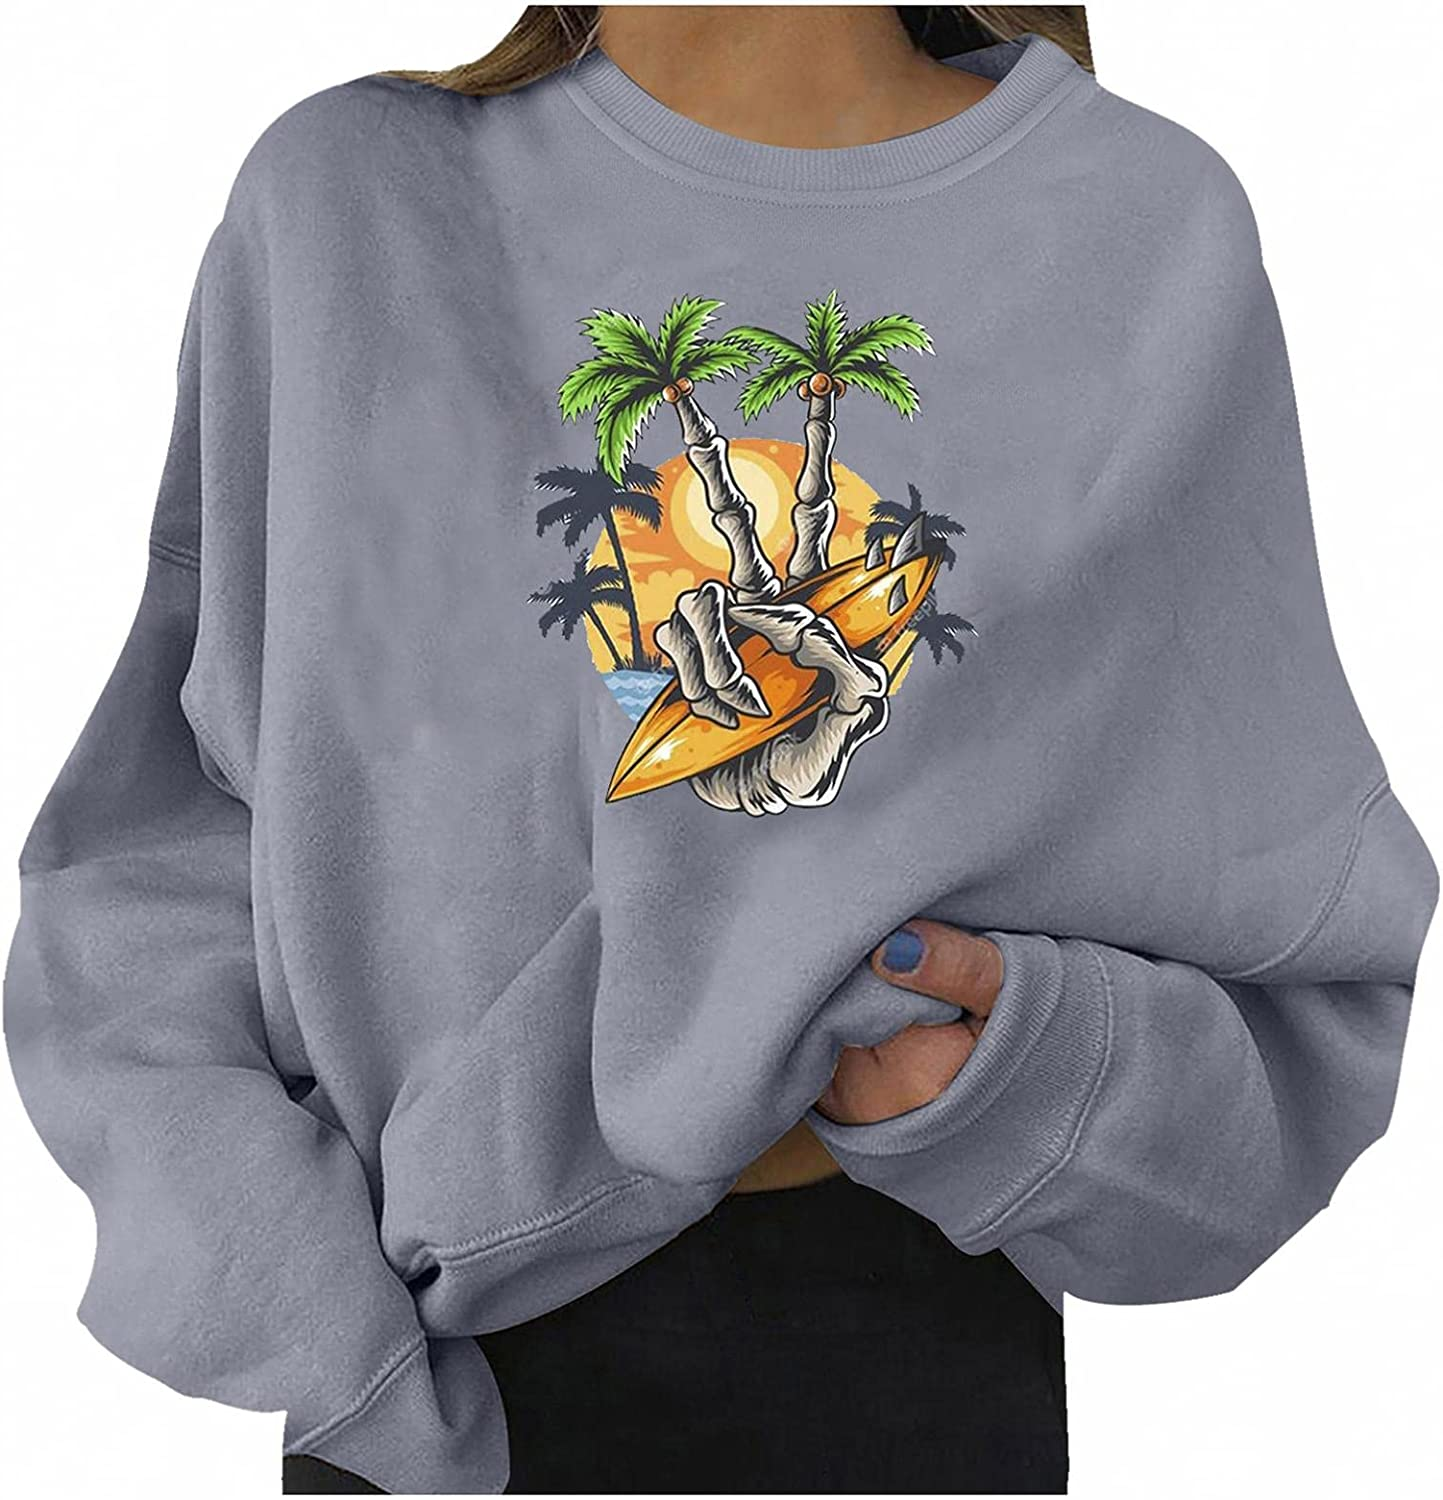 Halloween Sweatshirts for Women Casual Long Sleeve Halloween Trendy Graphic Fashion Crewneck Pullover Sweater Top Blouse